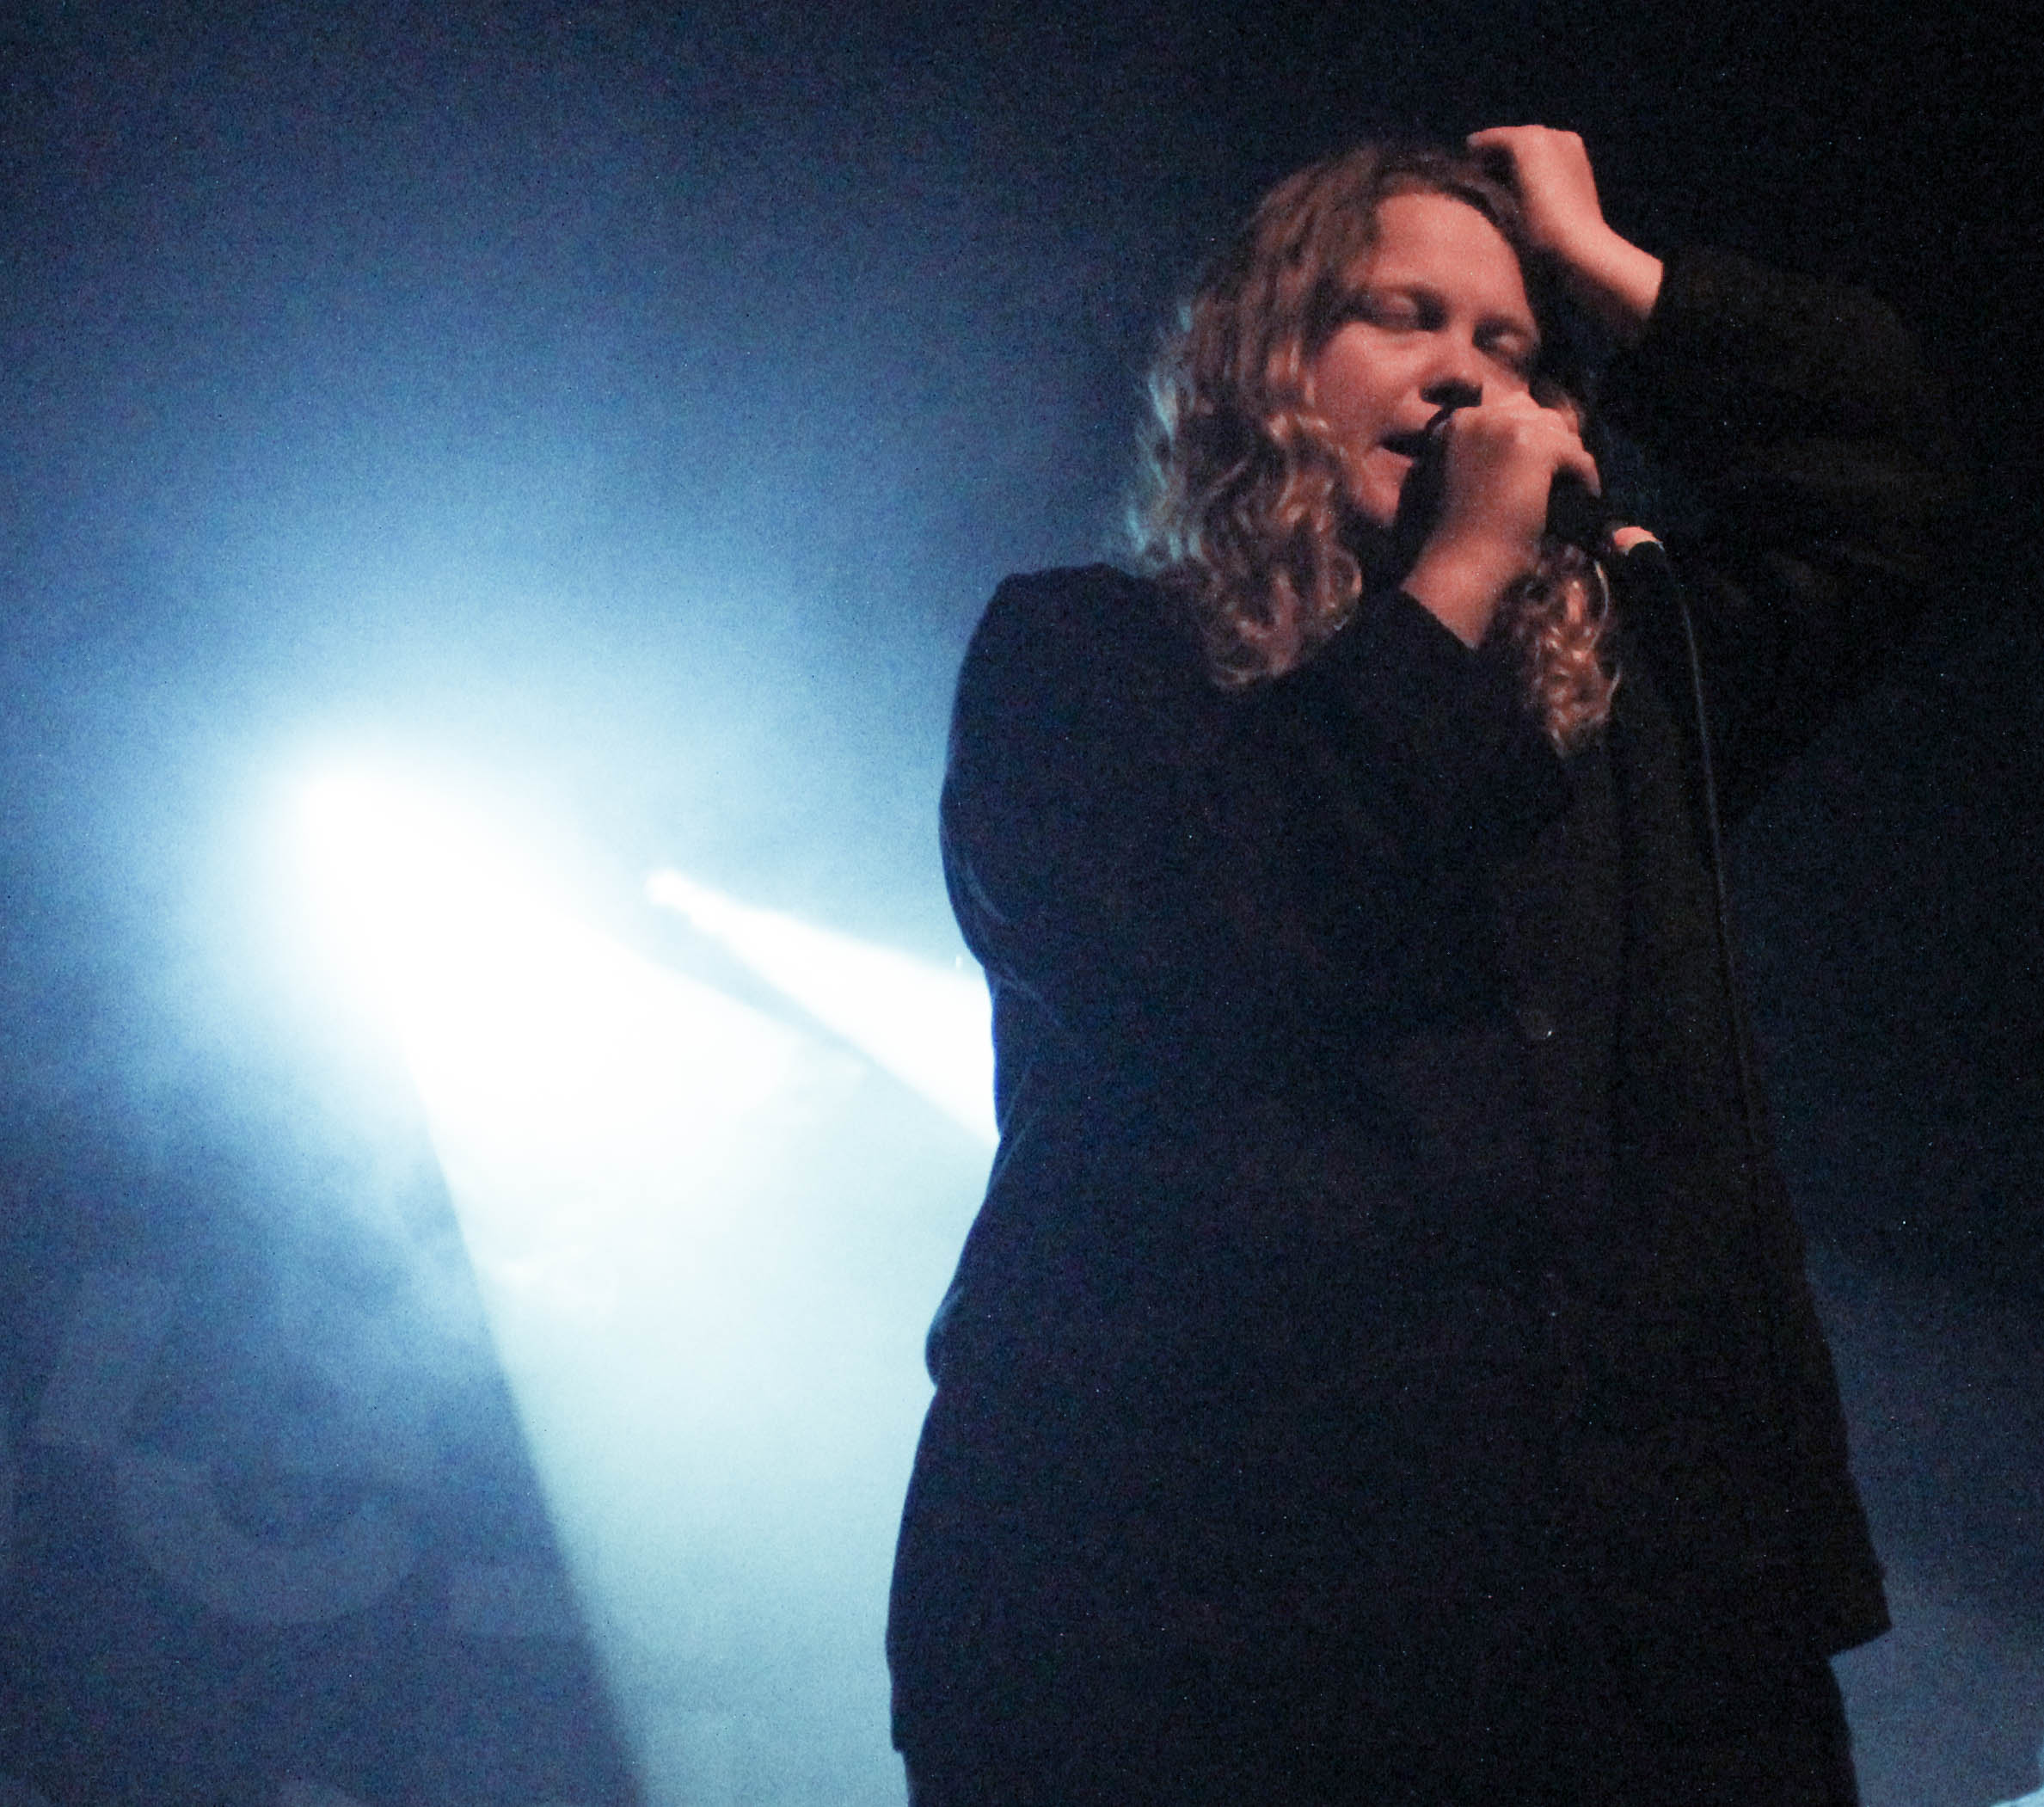 Kate Tempest at Live at Leeds - Photo © Concentus Music